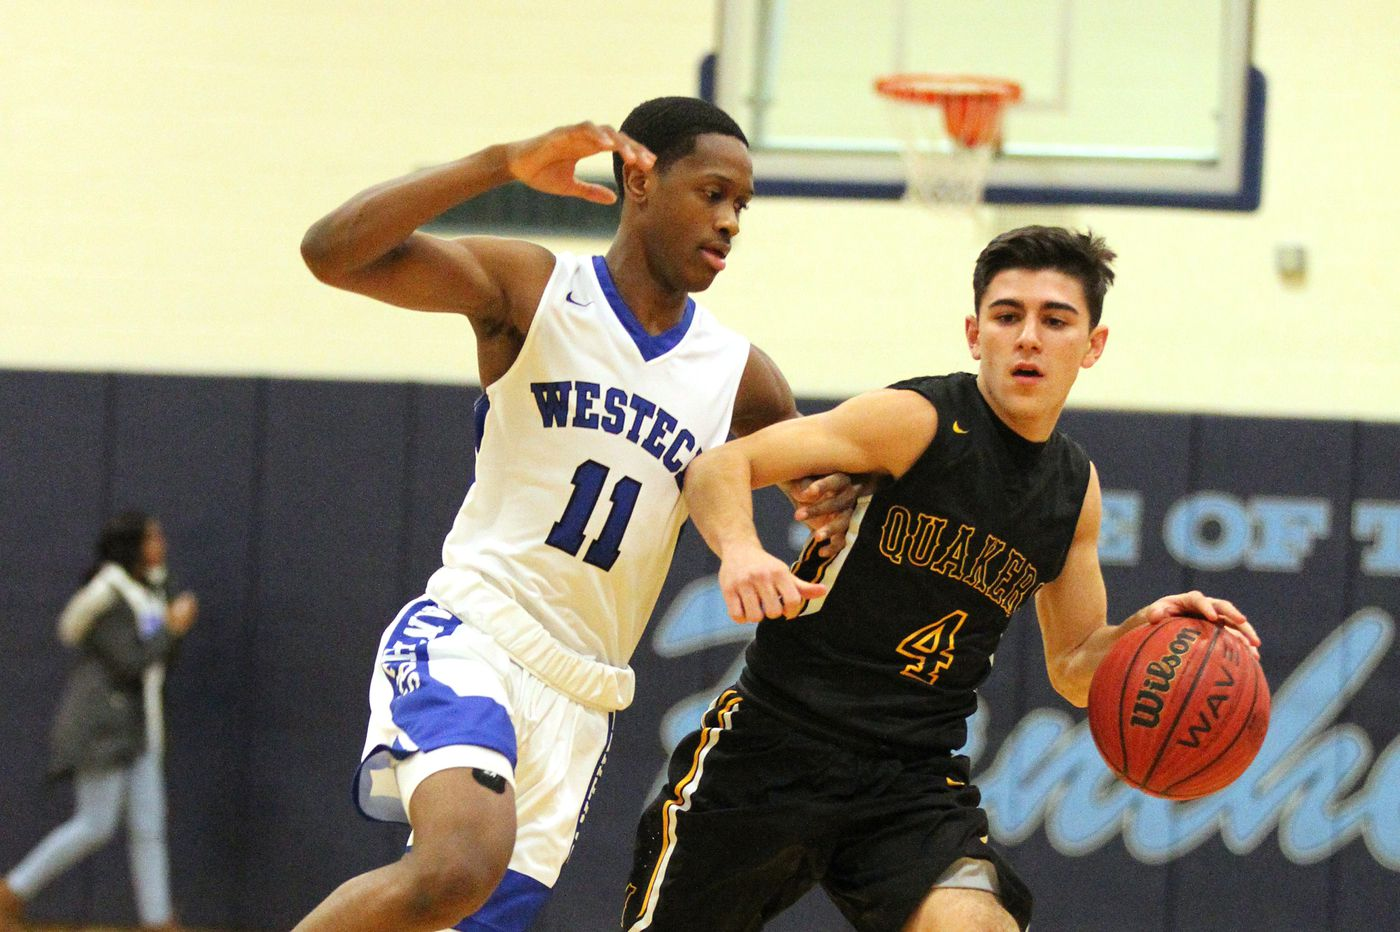 Monday's South Jersey roundup: Jagger Zrada's offense powers Moorestown boys' basketball past Willingboro